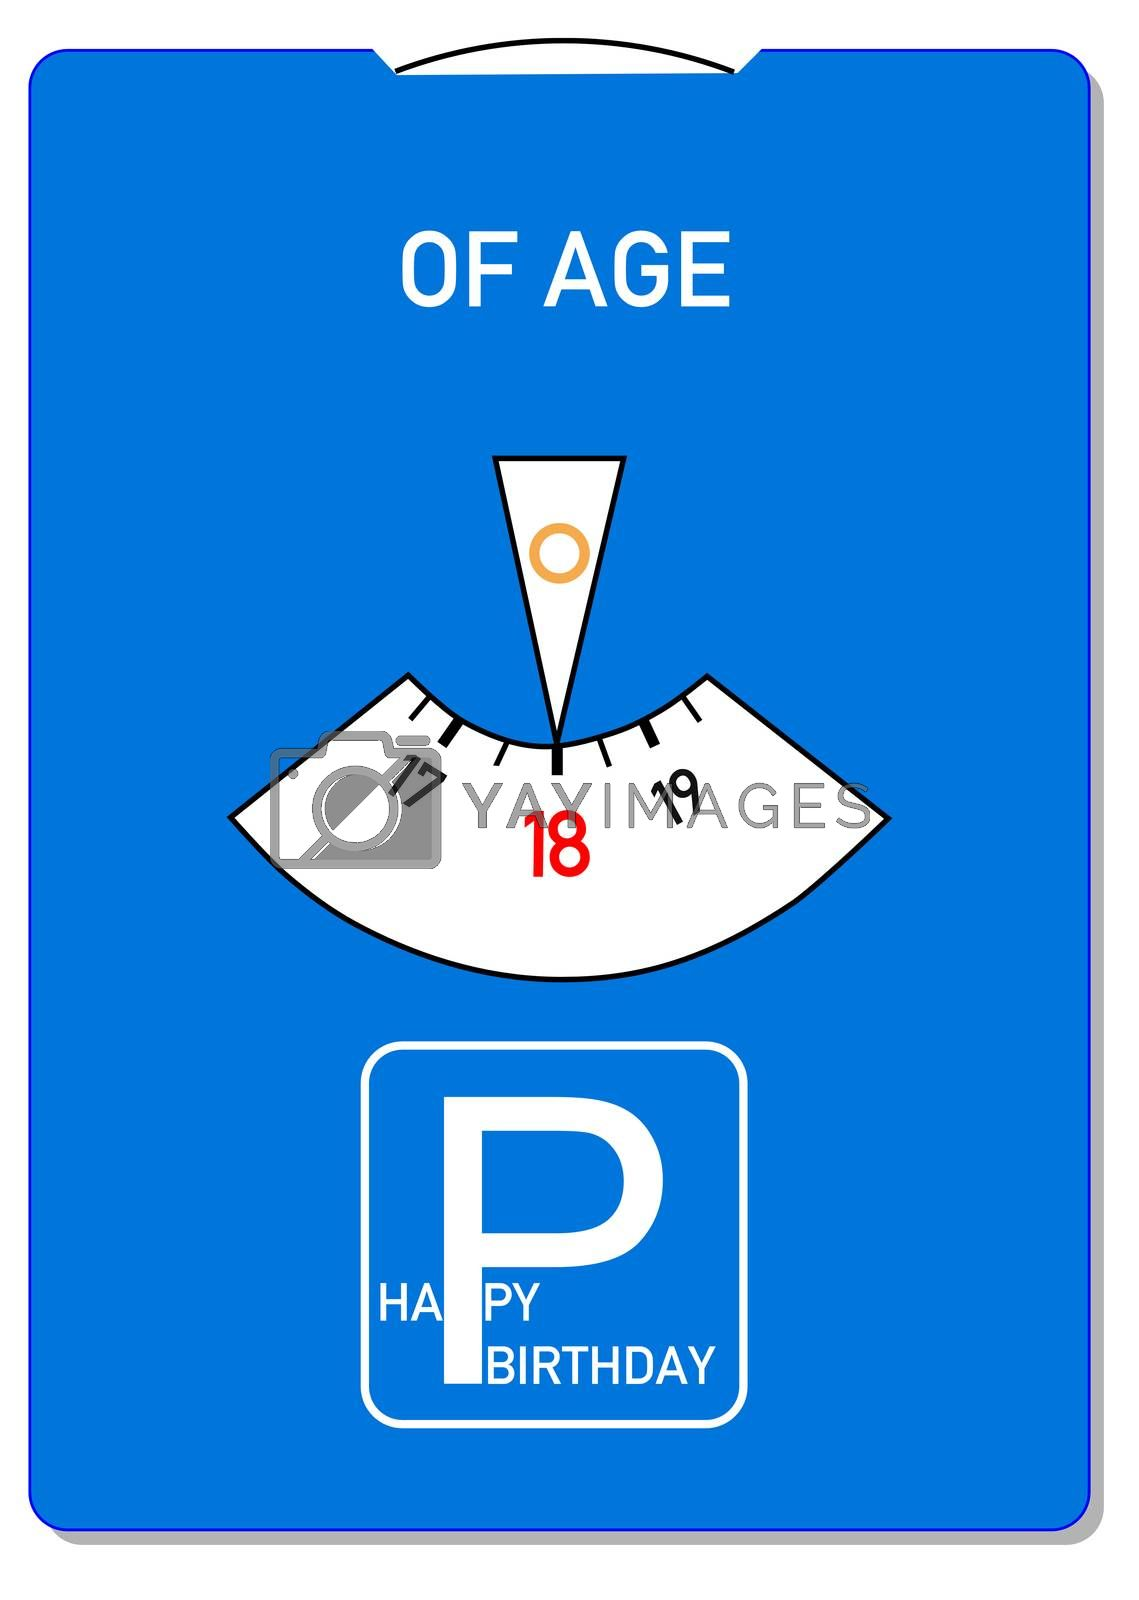 Birthday card for 18th birthday with the word of age